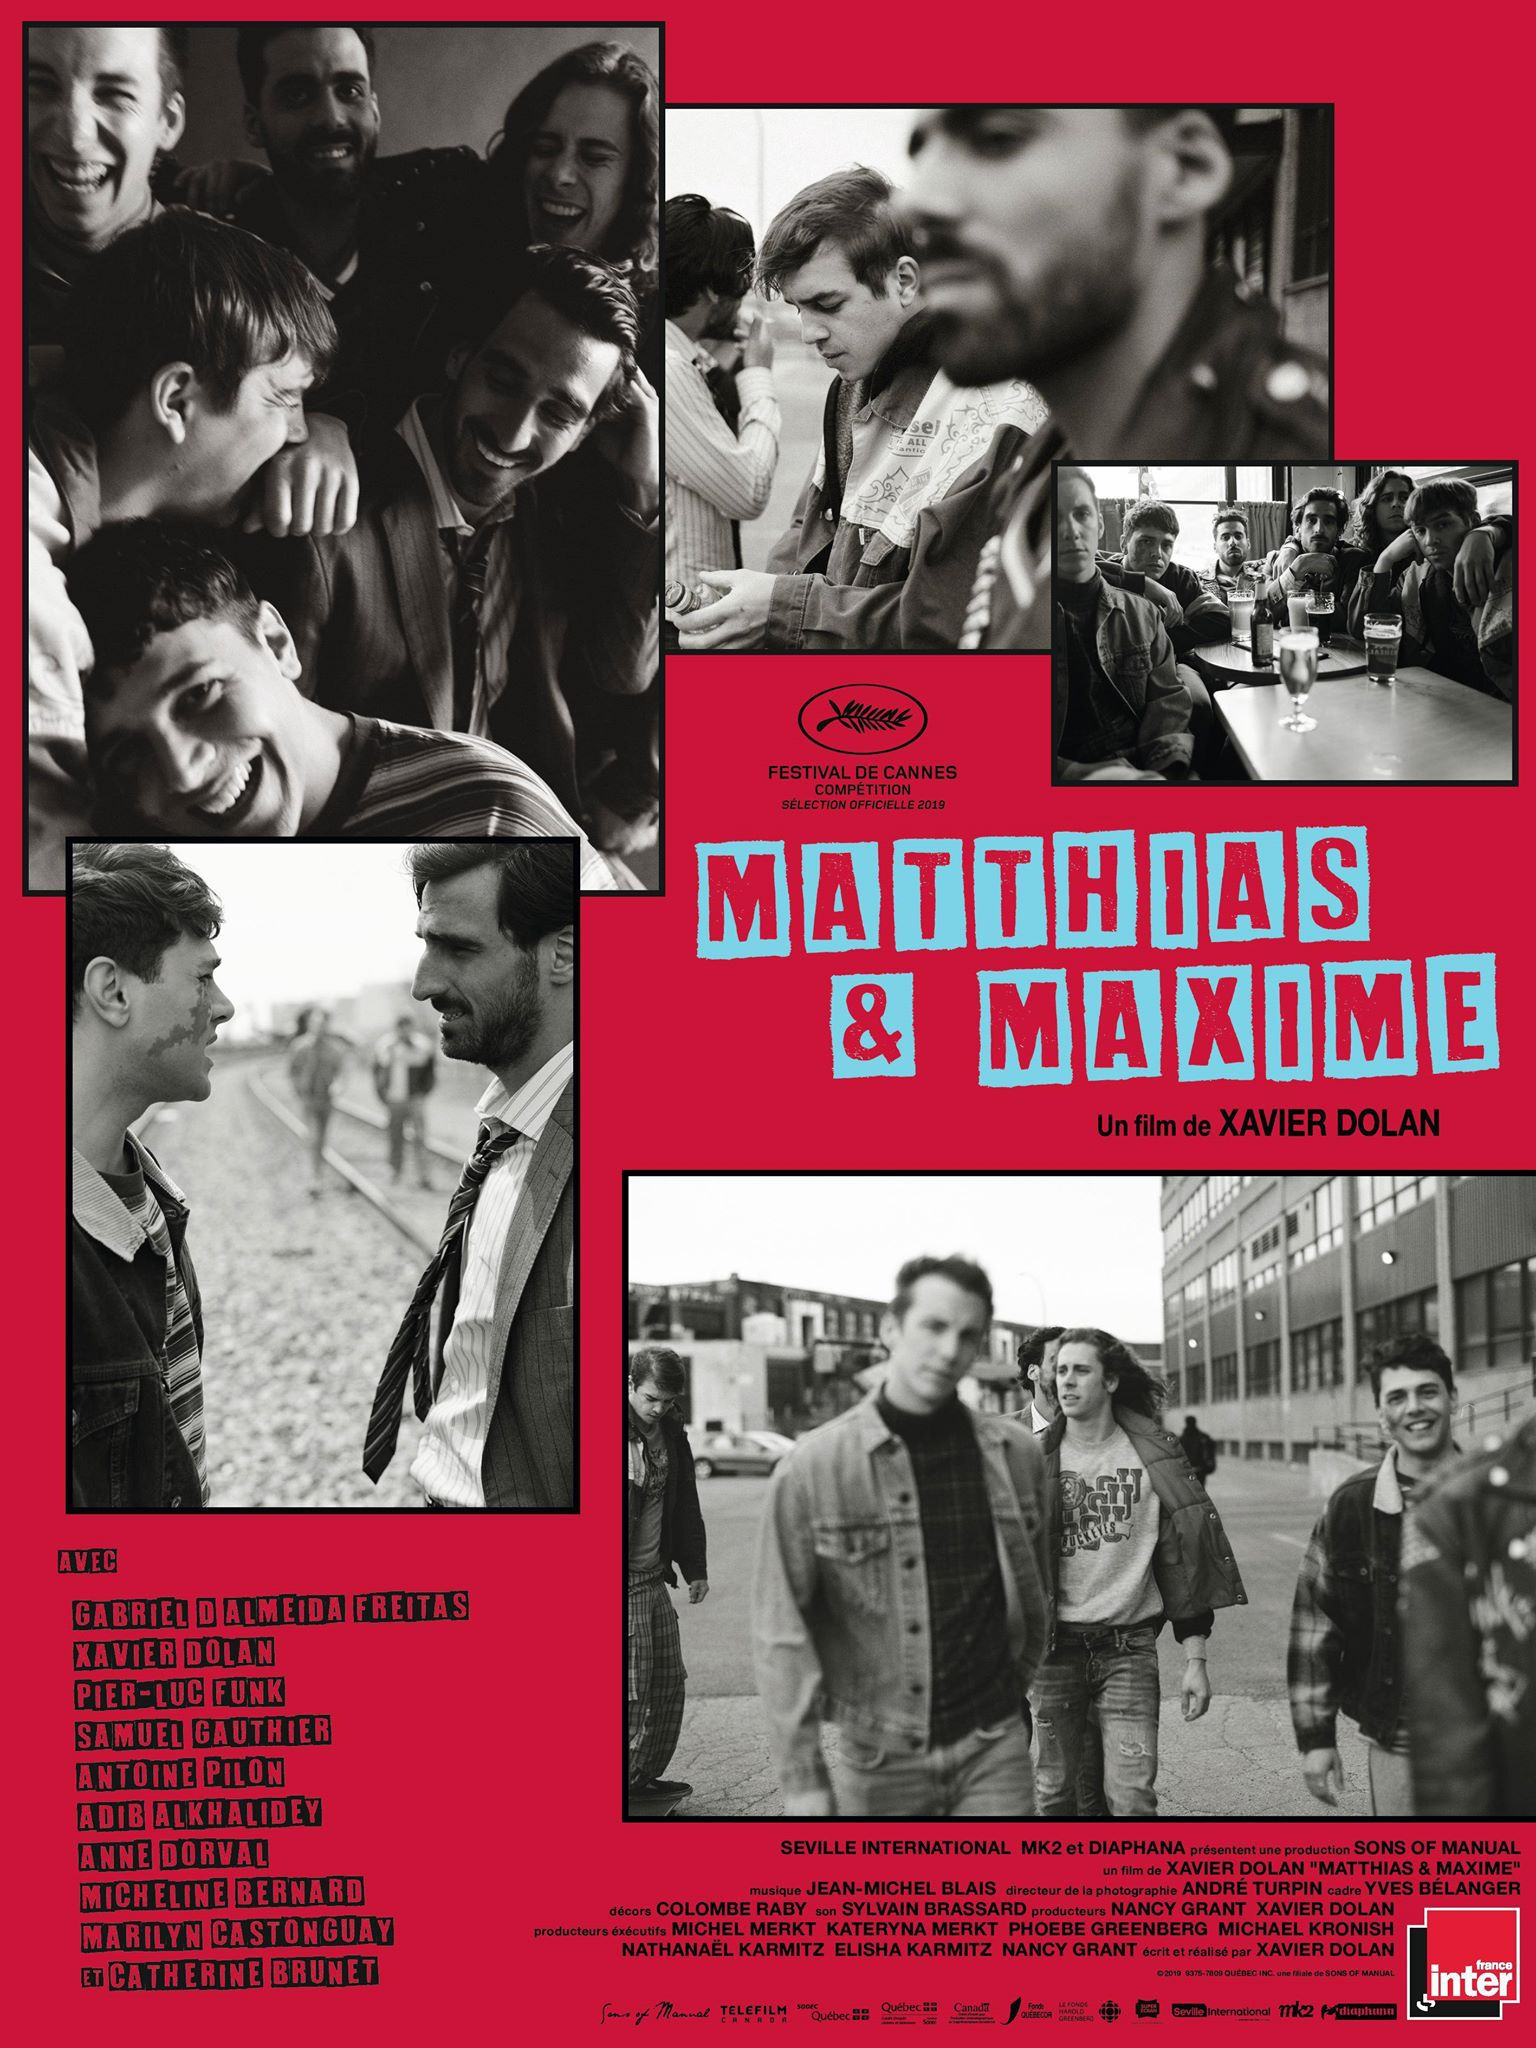 Matthias & Maxime - Film (2019) streaming VF gratuit complet